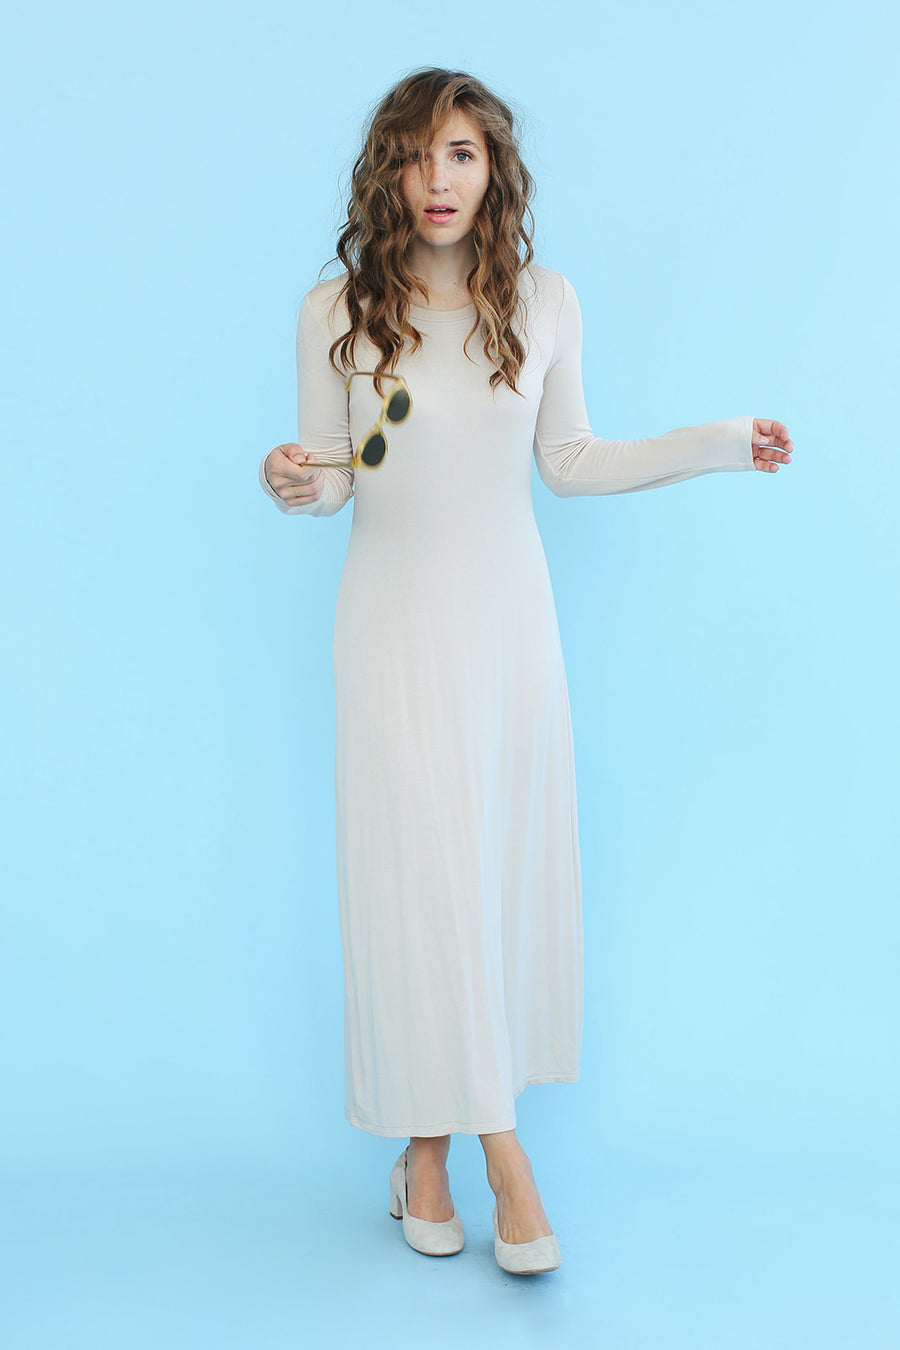 Sonnet James - IMMY - SAND - Dress  ,Immy Sand